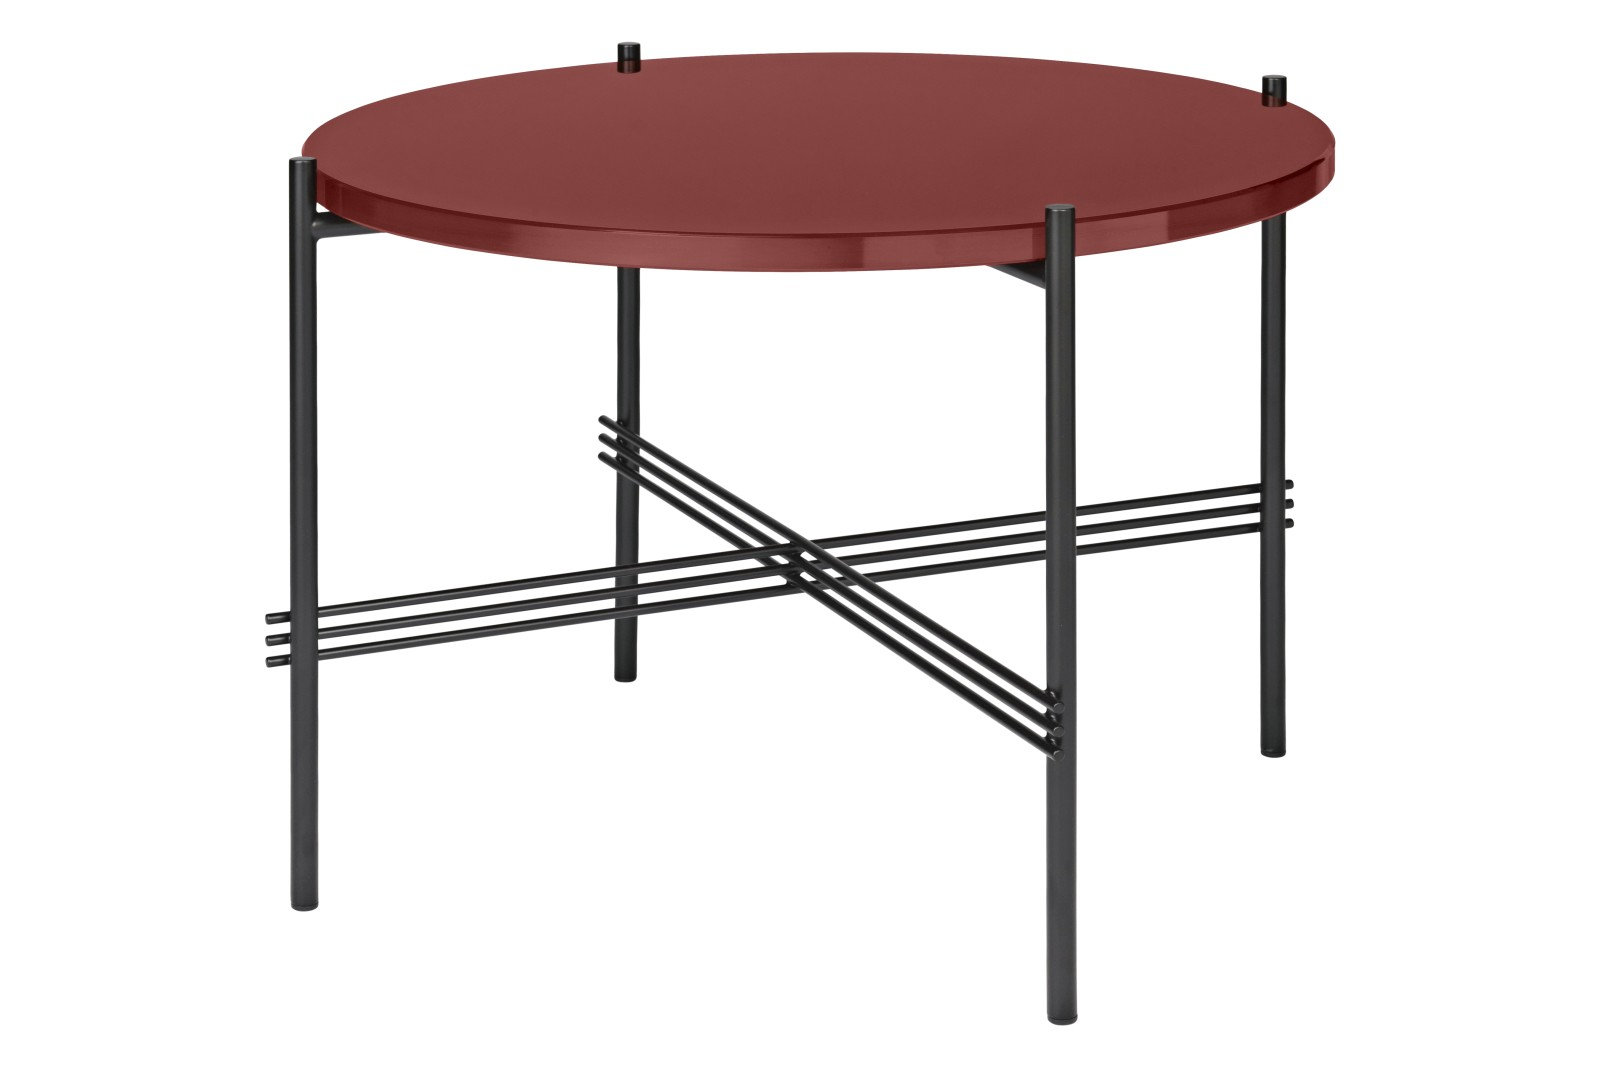 TS Round Coffee Table with Glass Top - Black Frame Rusty Red Top and Black Frame, 0 55 x 41 cm